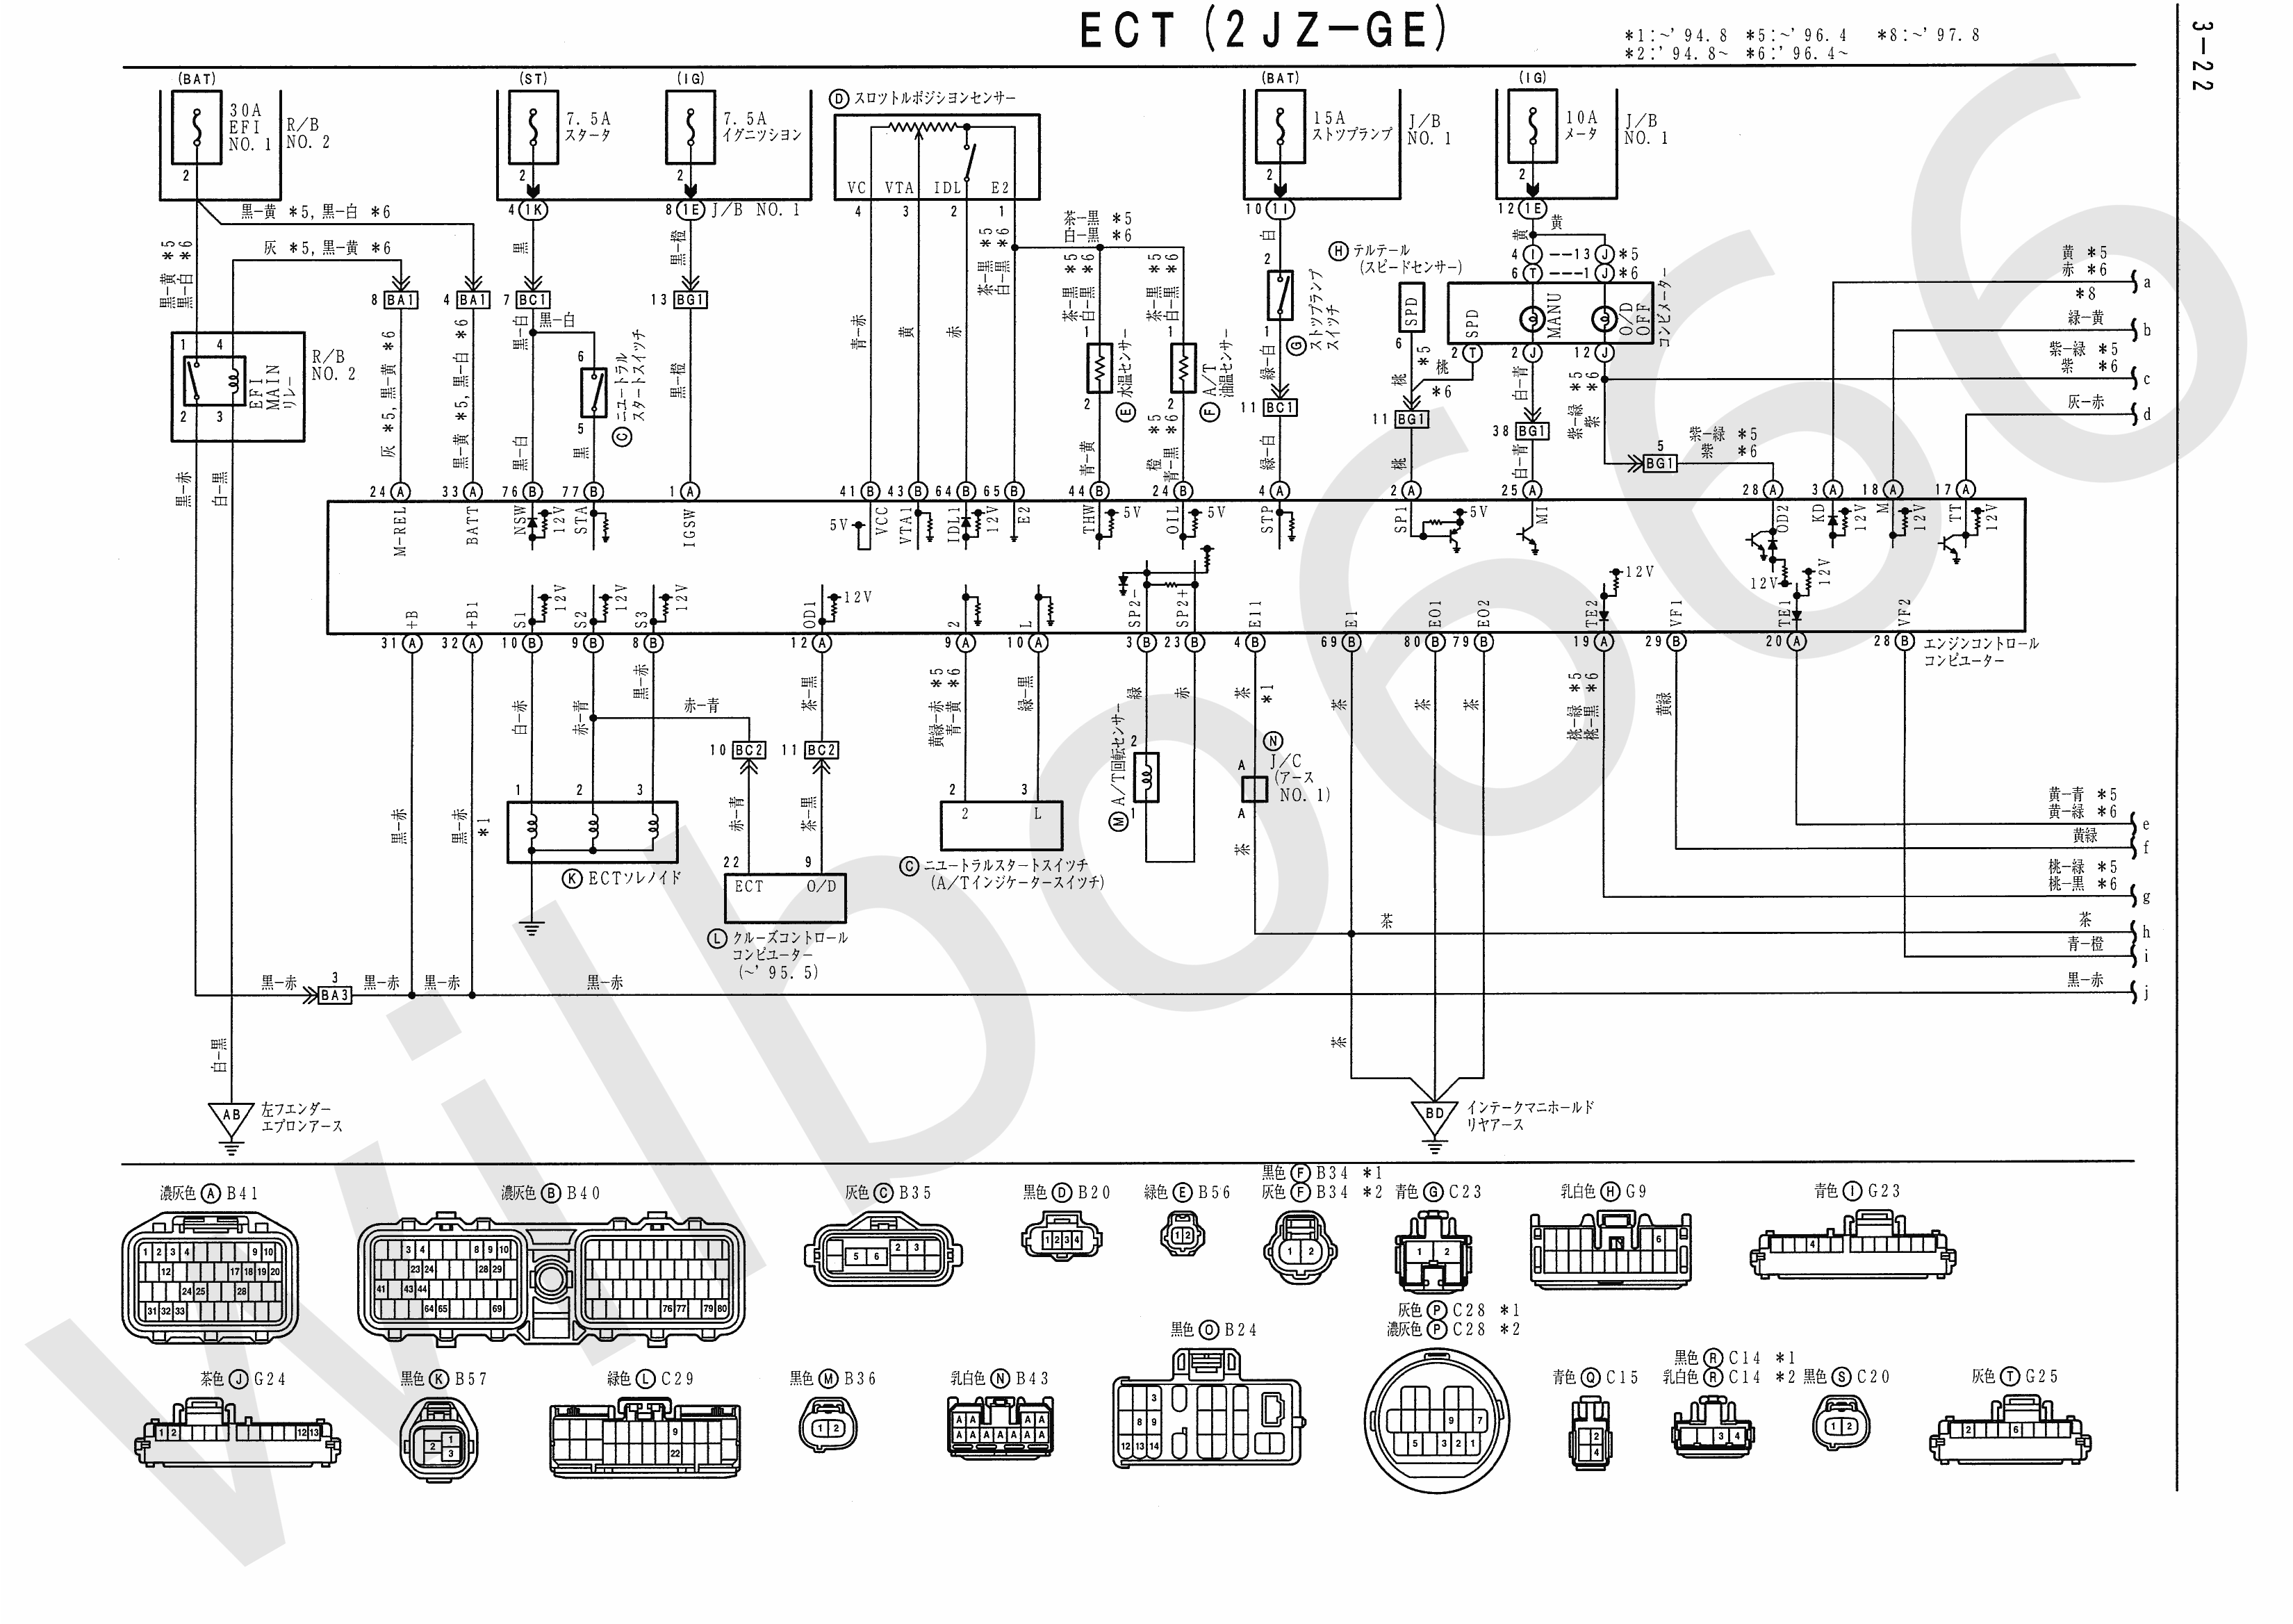 JZA80 Electrical Wiring Diagram 6742505 3 22 wilbo666 2jz ge jza80 supra engine wiring ge ignitor wiring harness at crackthecode.co